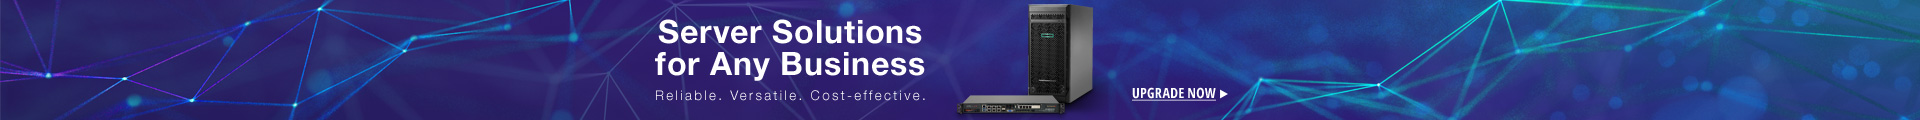 Server solutions for any business